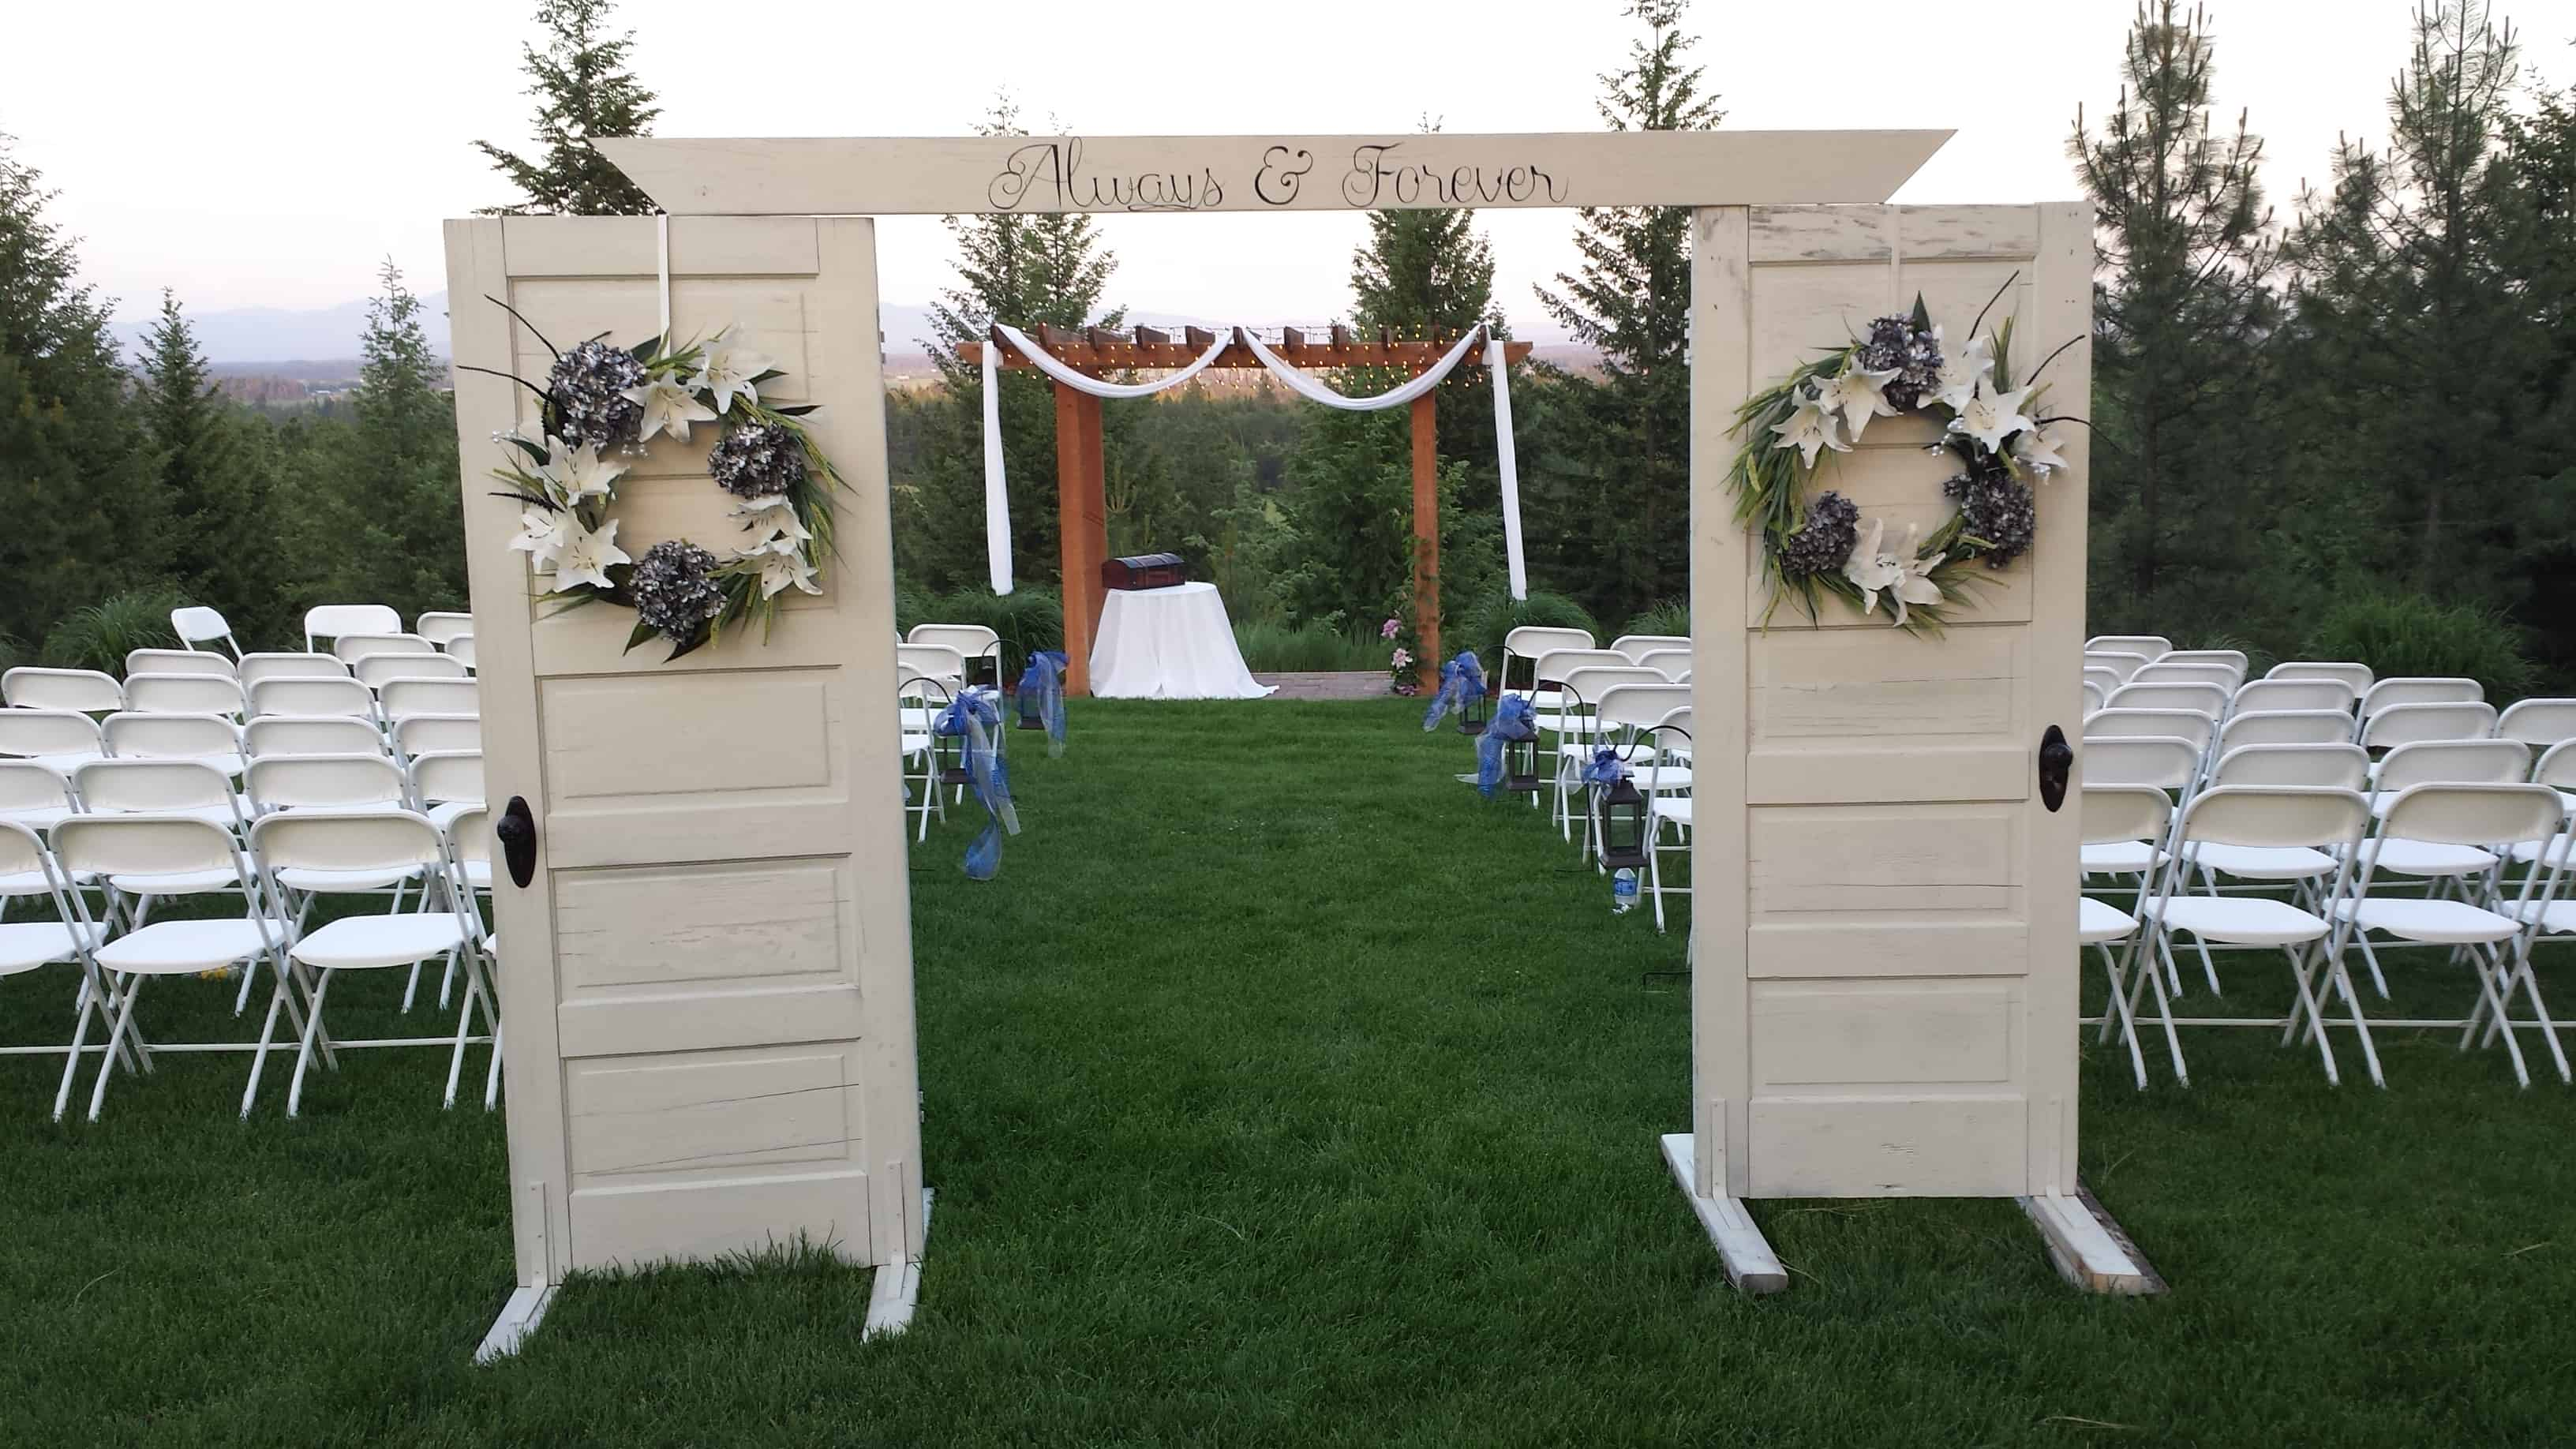 More ridge decor ceremony entrance denison ridge for Wedding door decorating ideas